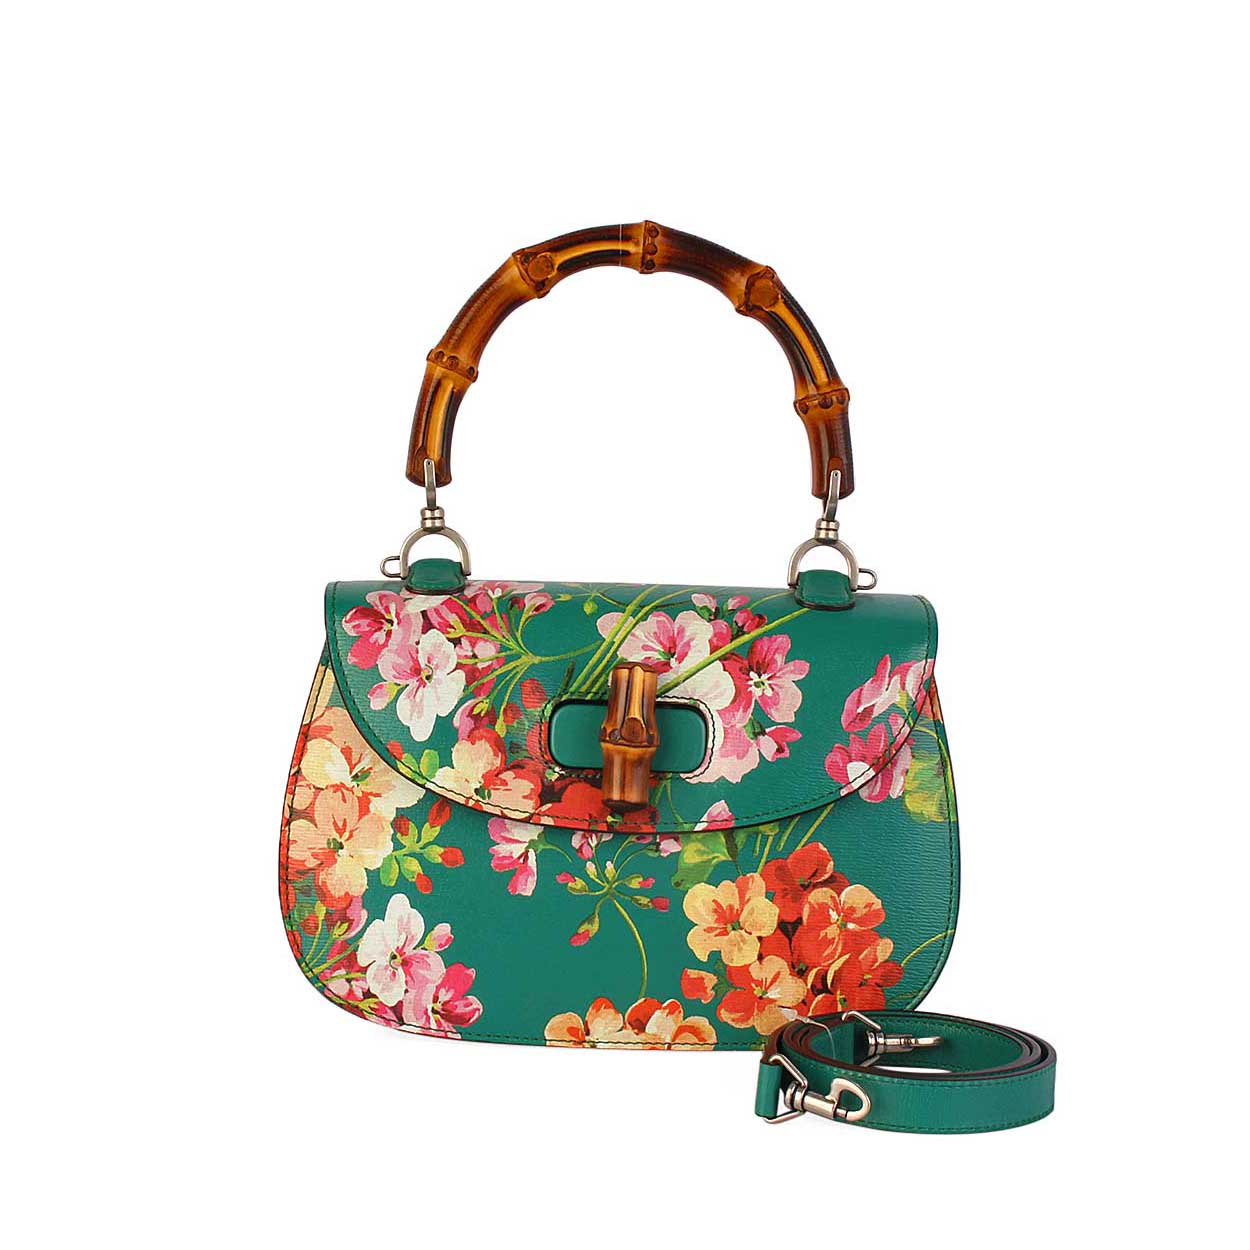 e3424c38c16263 GUCCI Bamboo Leather Classic Blooms Top Handle Bag Emerald Green | Luxity